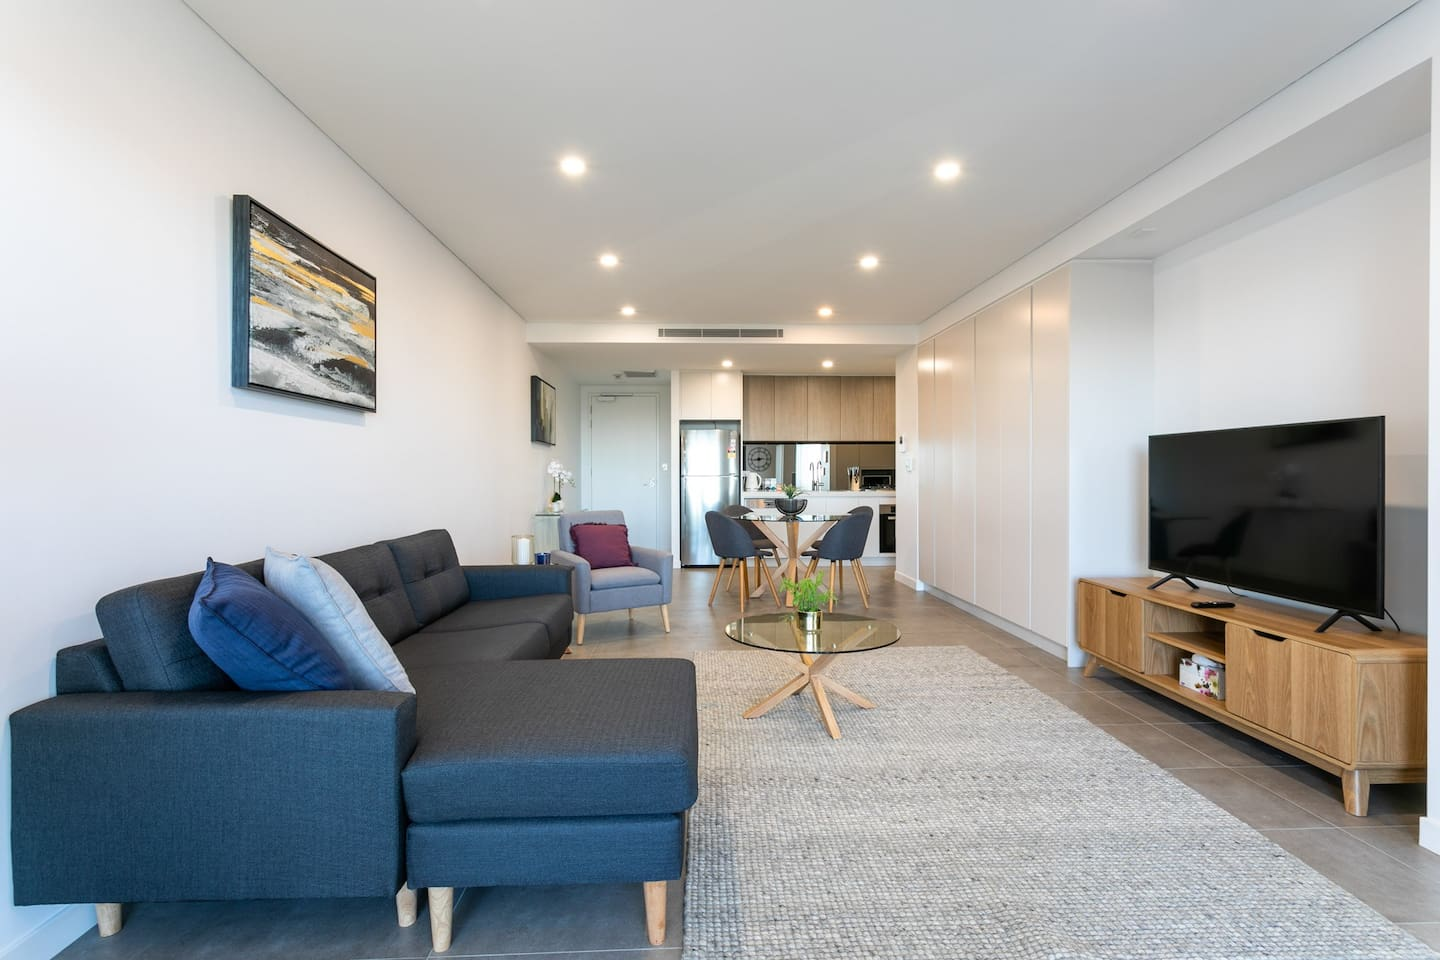 Modern open plan living dining and state of the art kitchen. Modern furnishings for the avid traveler to enjoy.